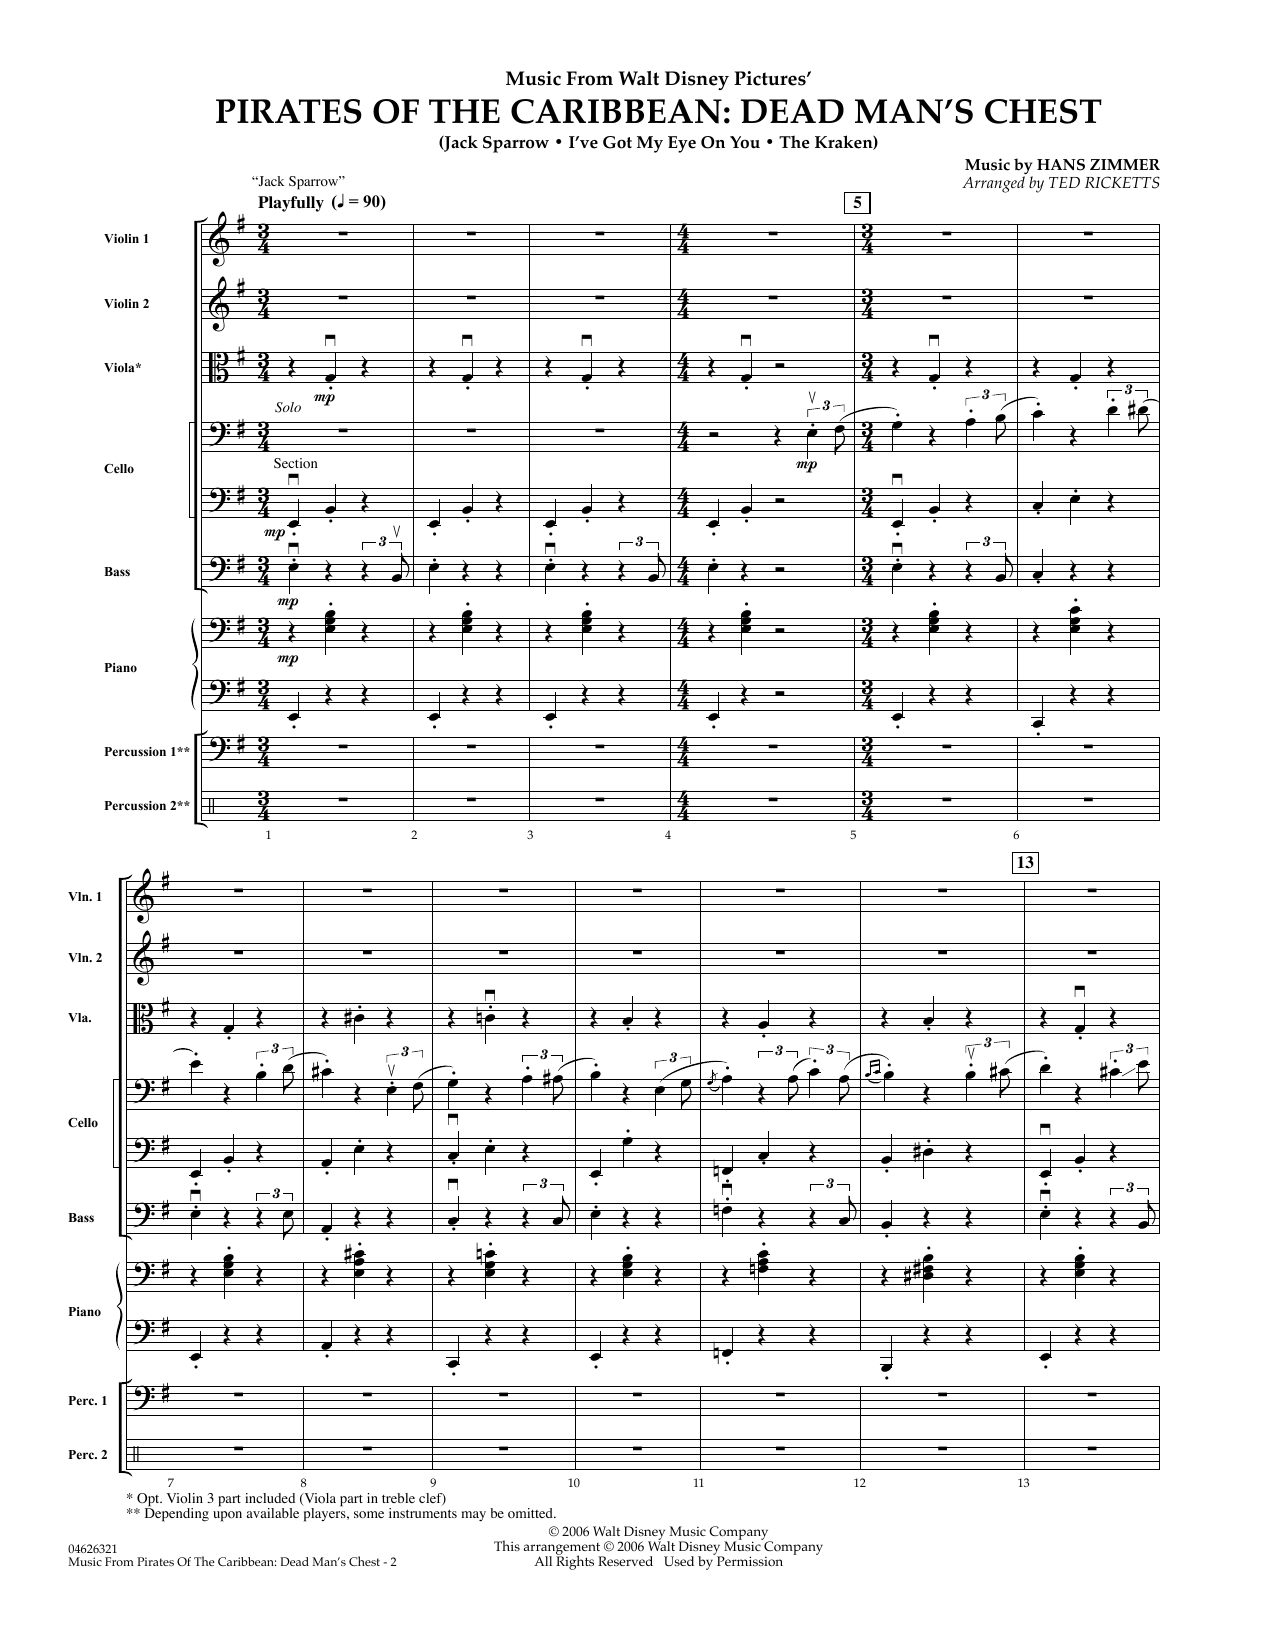 Music from Pirates of the Caribbean: Dead Man's Chest (COMPLETE) sheet music for orchestra by Hans Zimmer